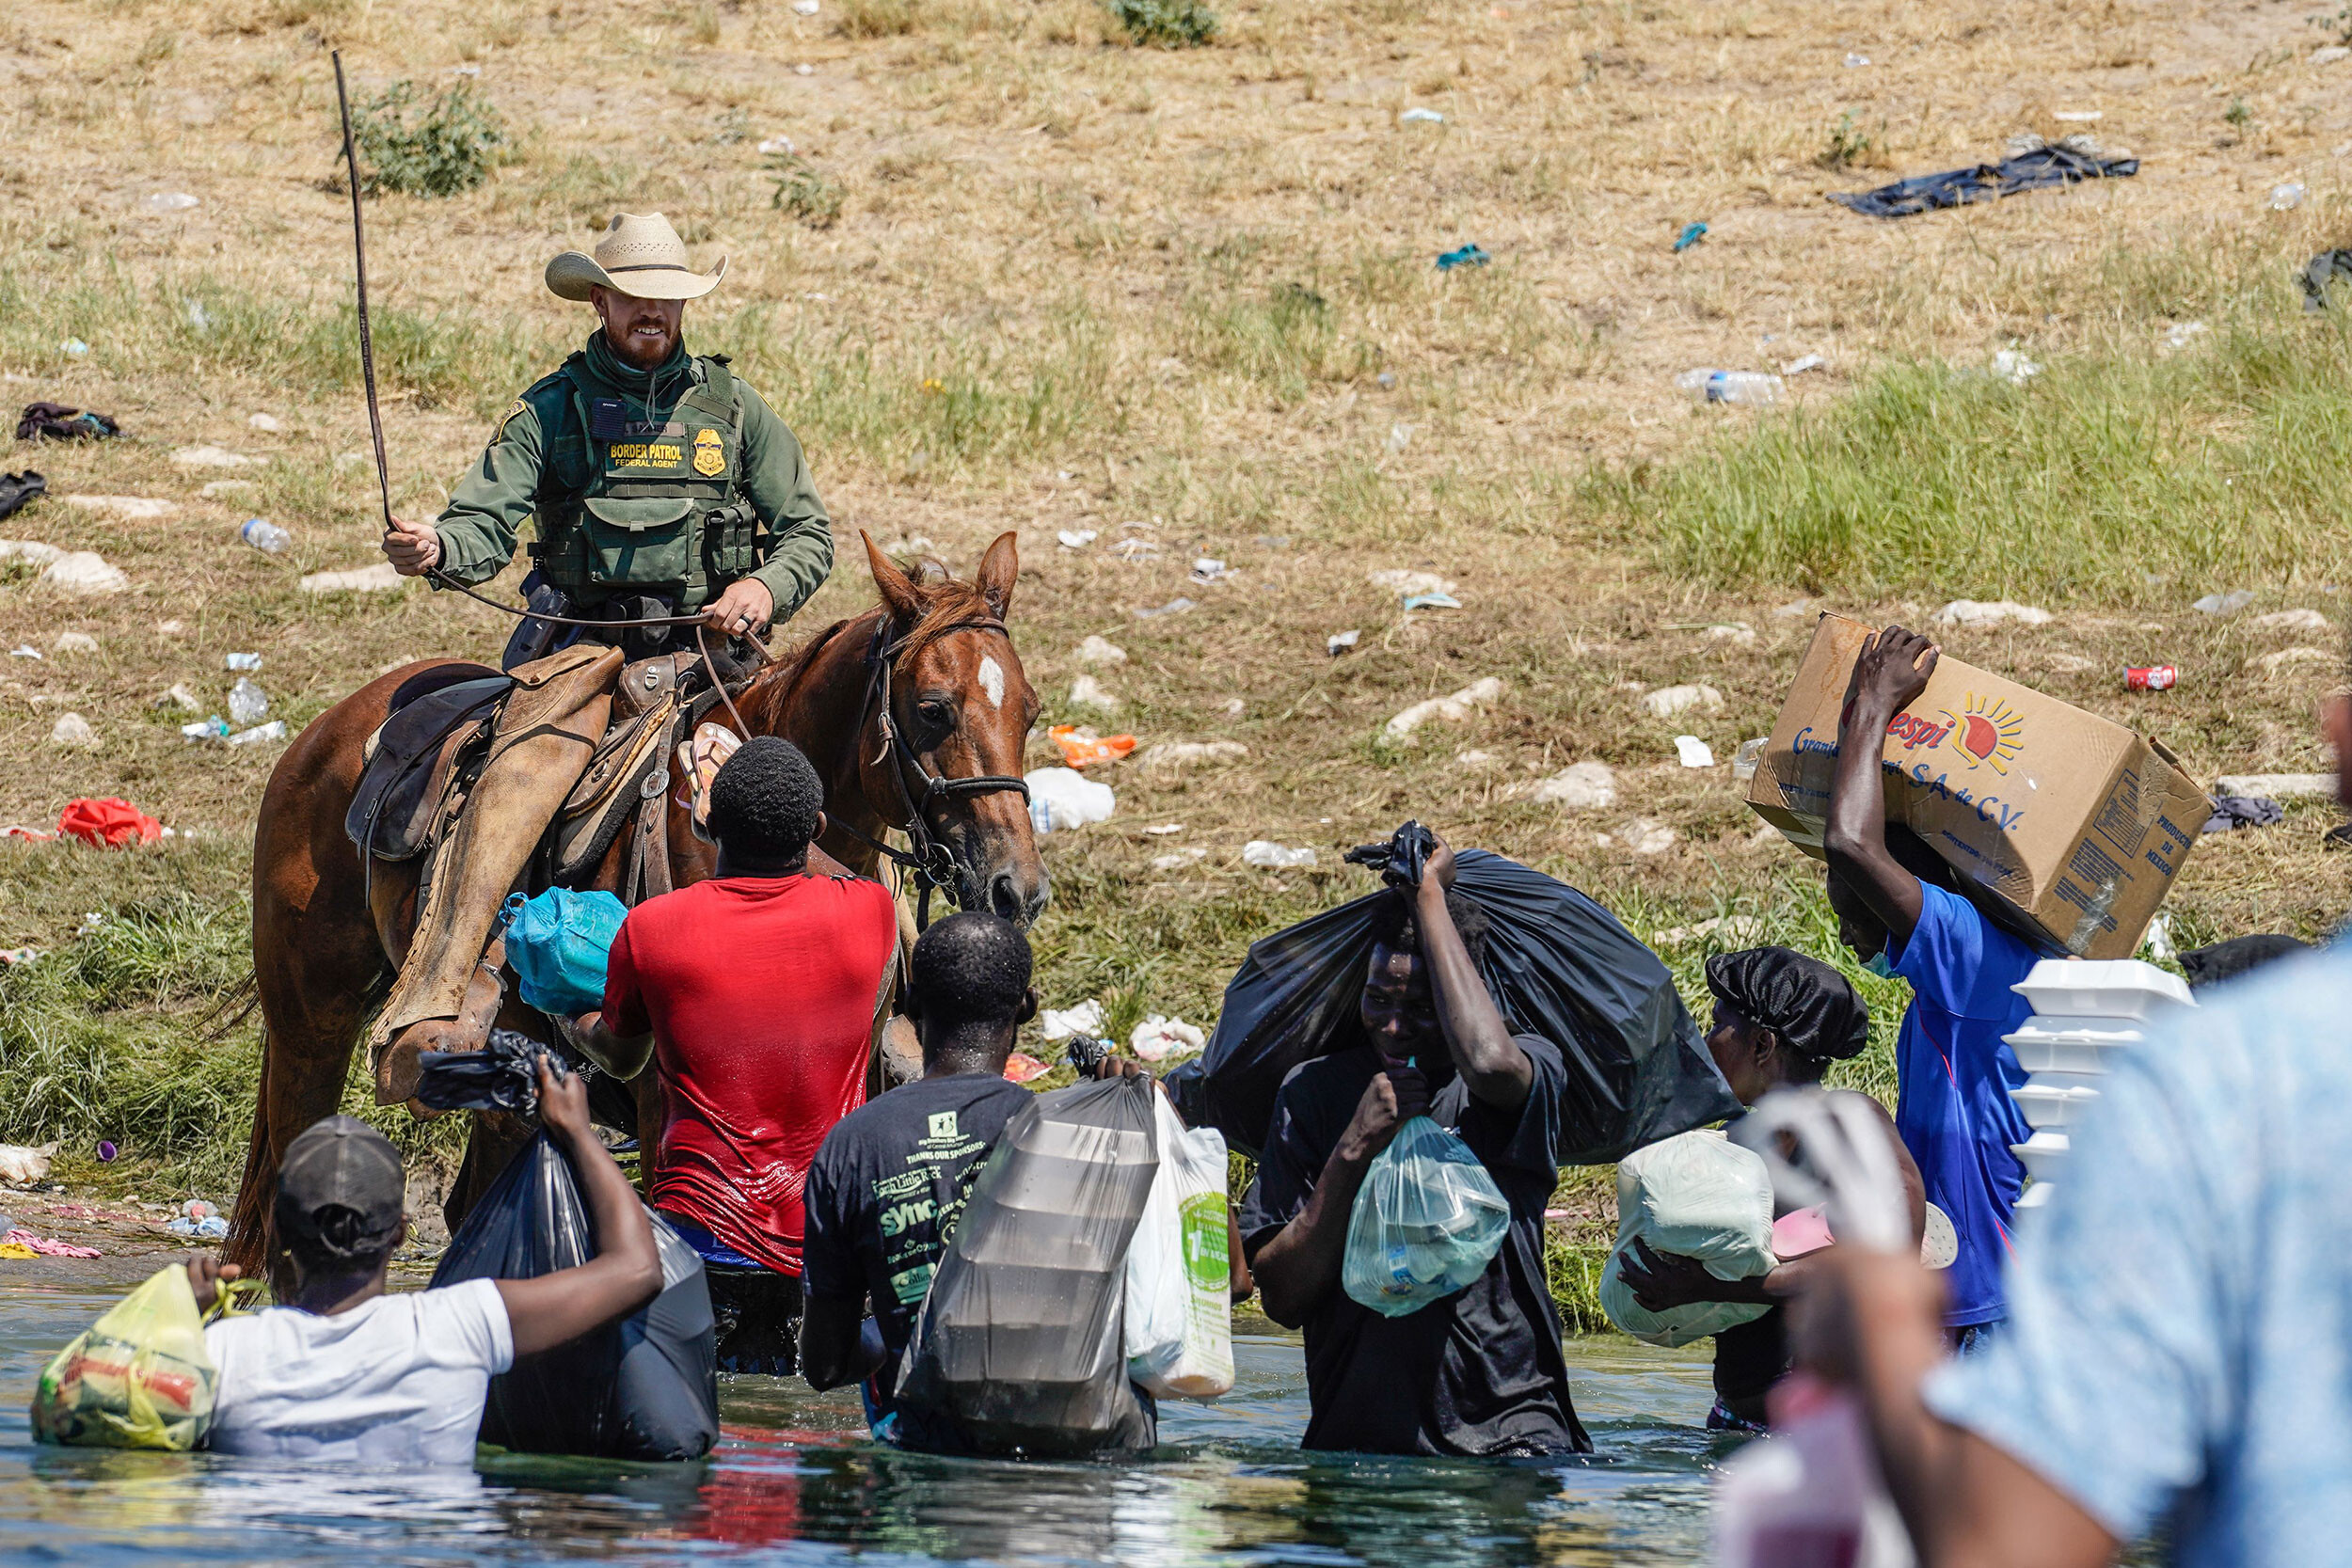 <i>Paul Ratje/AFP/Getty Images</i><br/>A United States Border Patrol agent on horseback uses the reins as he tries to stop Haitian migrants from entering an encampment on the banks of the Rio Grande near the Acuna Del Rio International Bridge in Del Rio